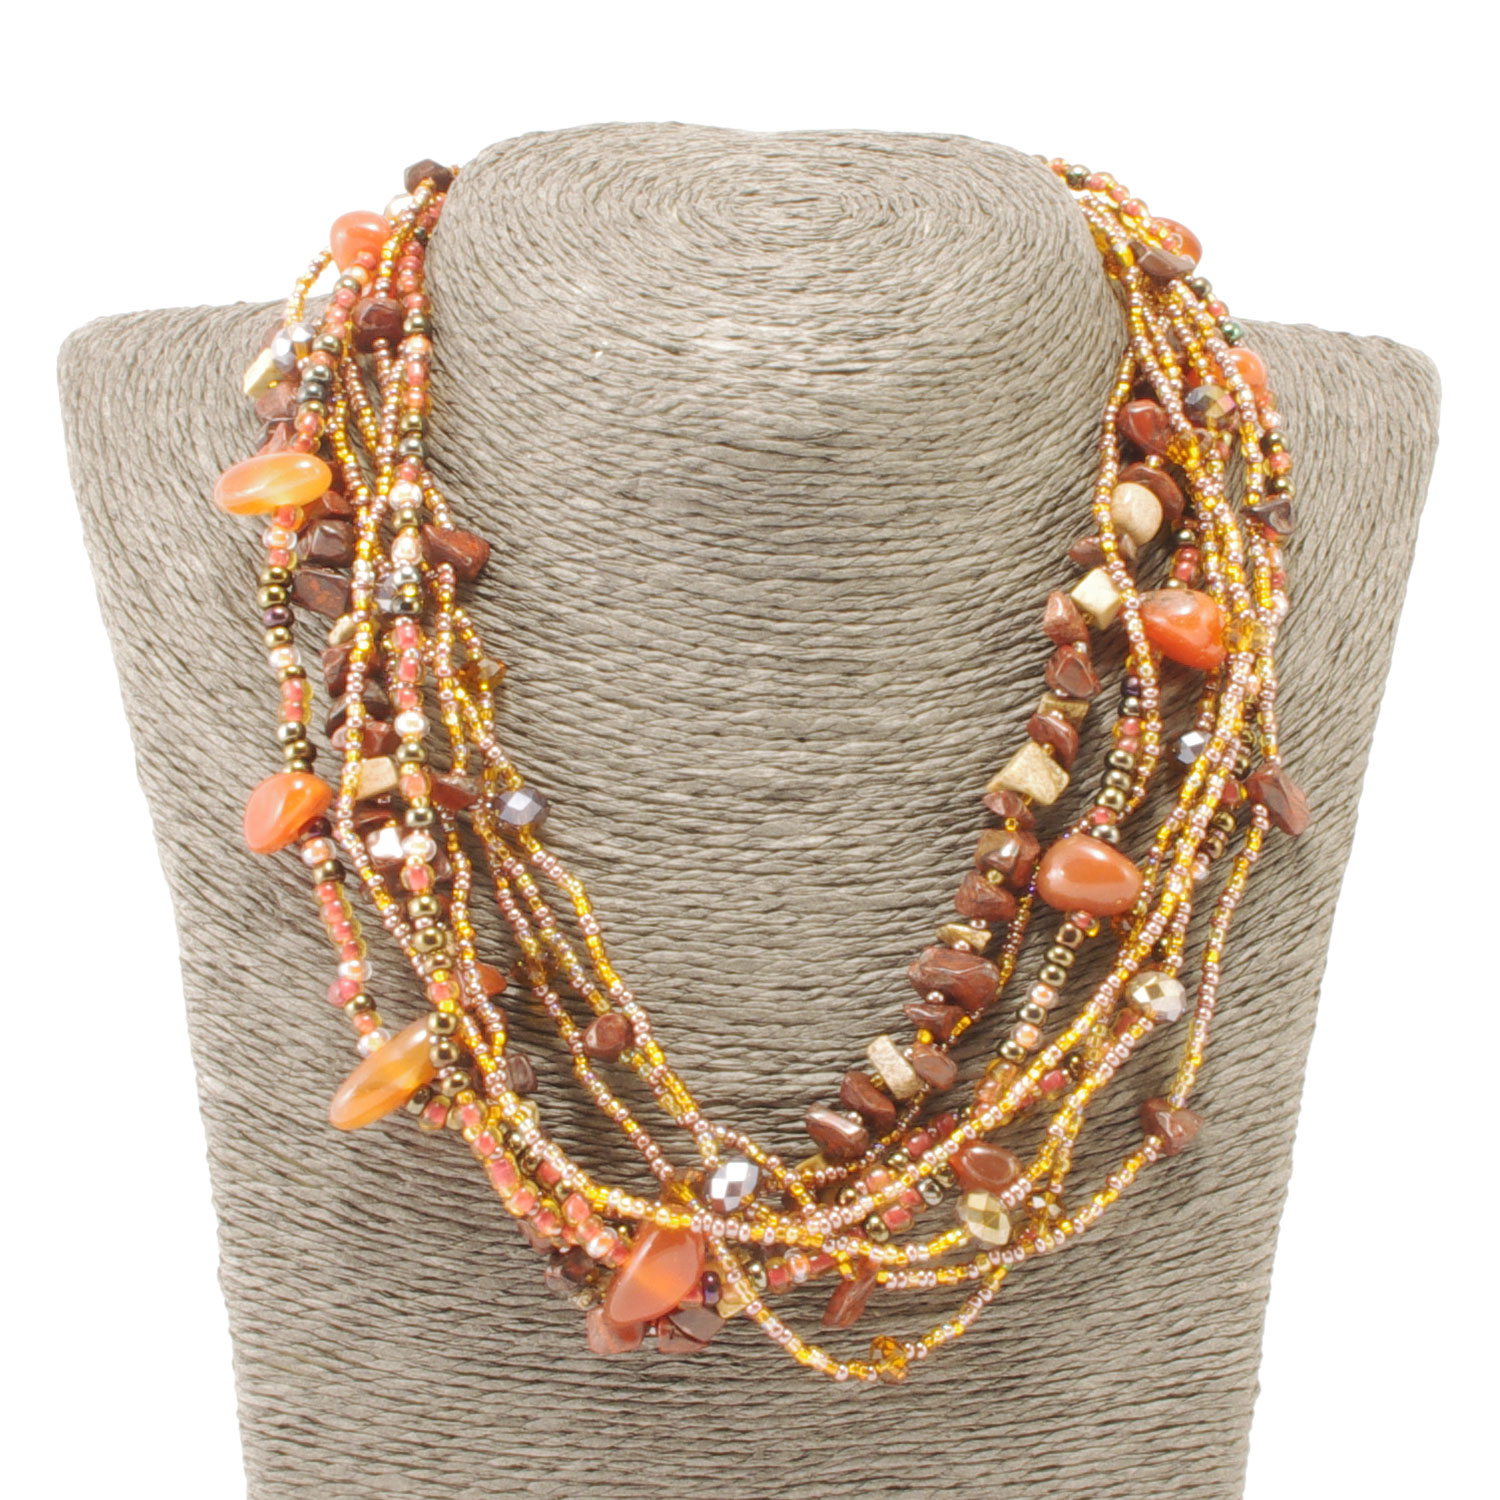 New! Rock Candy Magnetic Necklace in Citrus